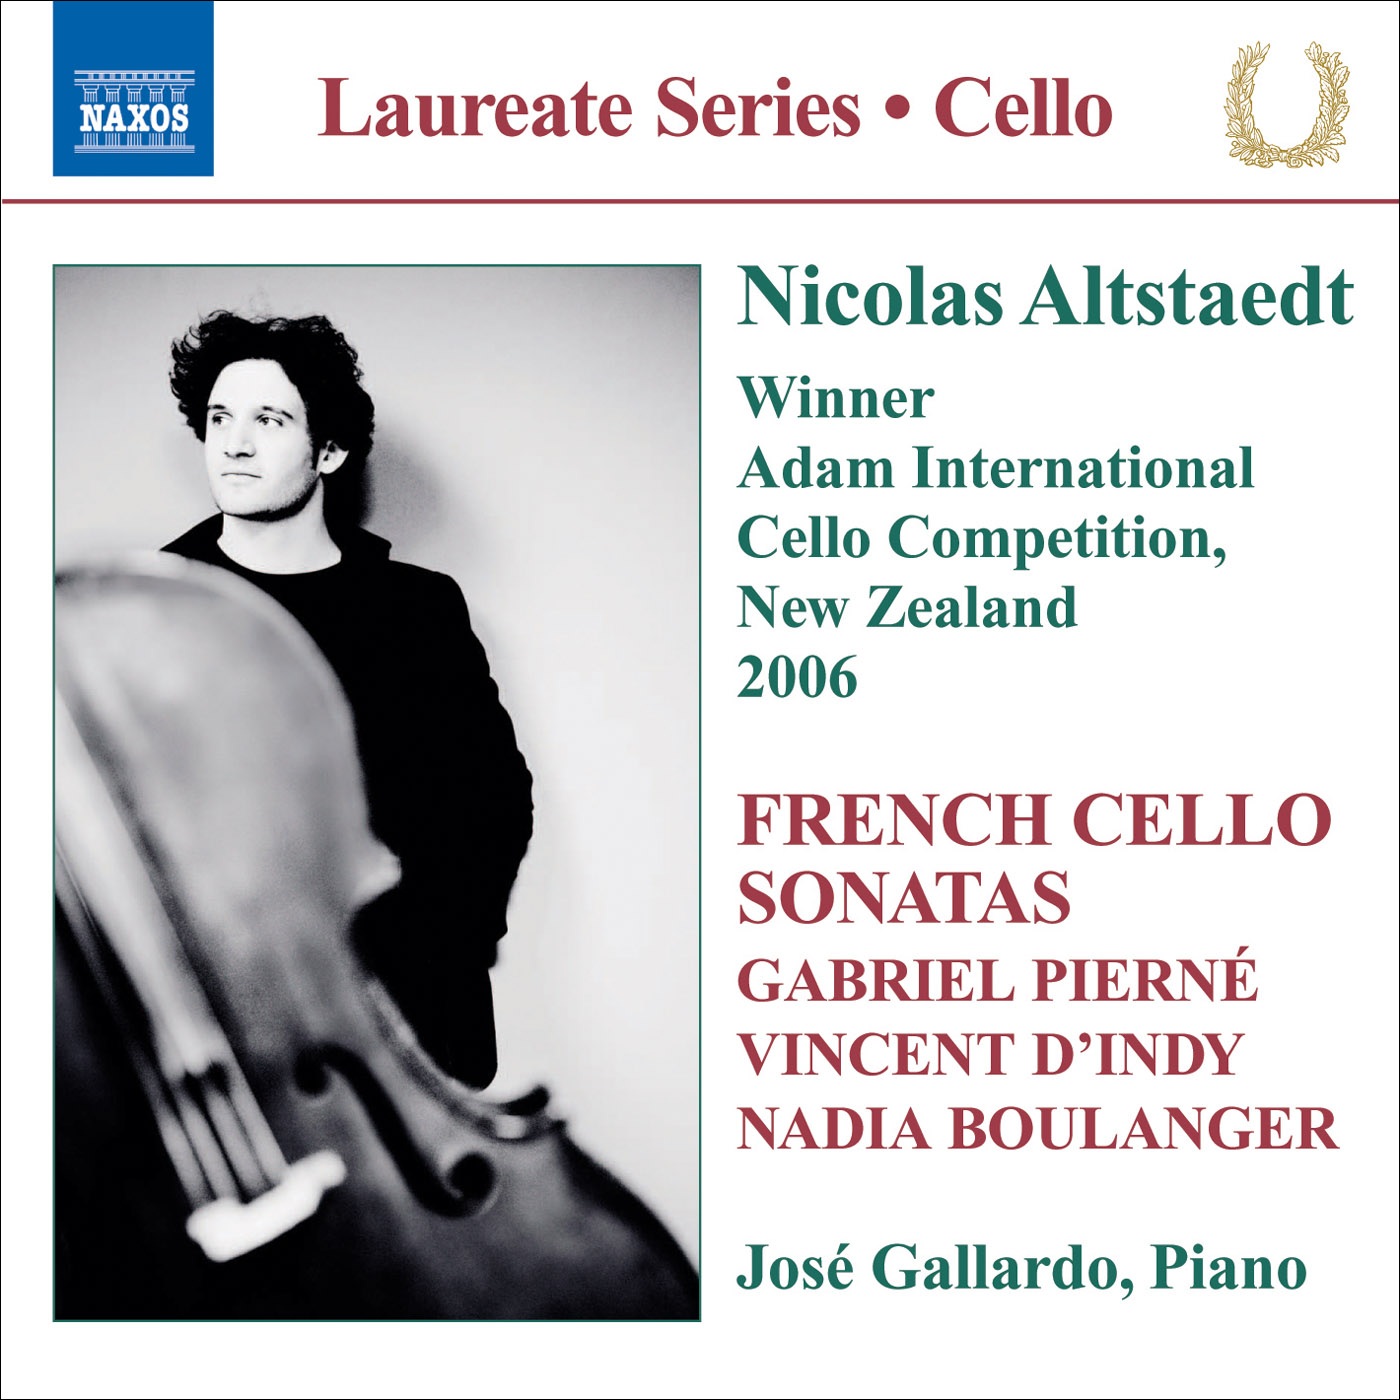 Altstaedt, Nicolas - French Cello Sonatas